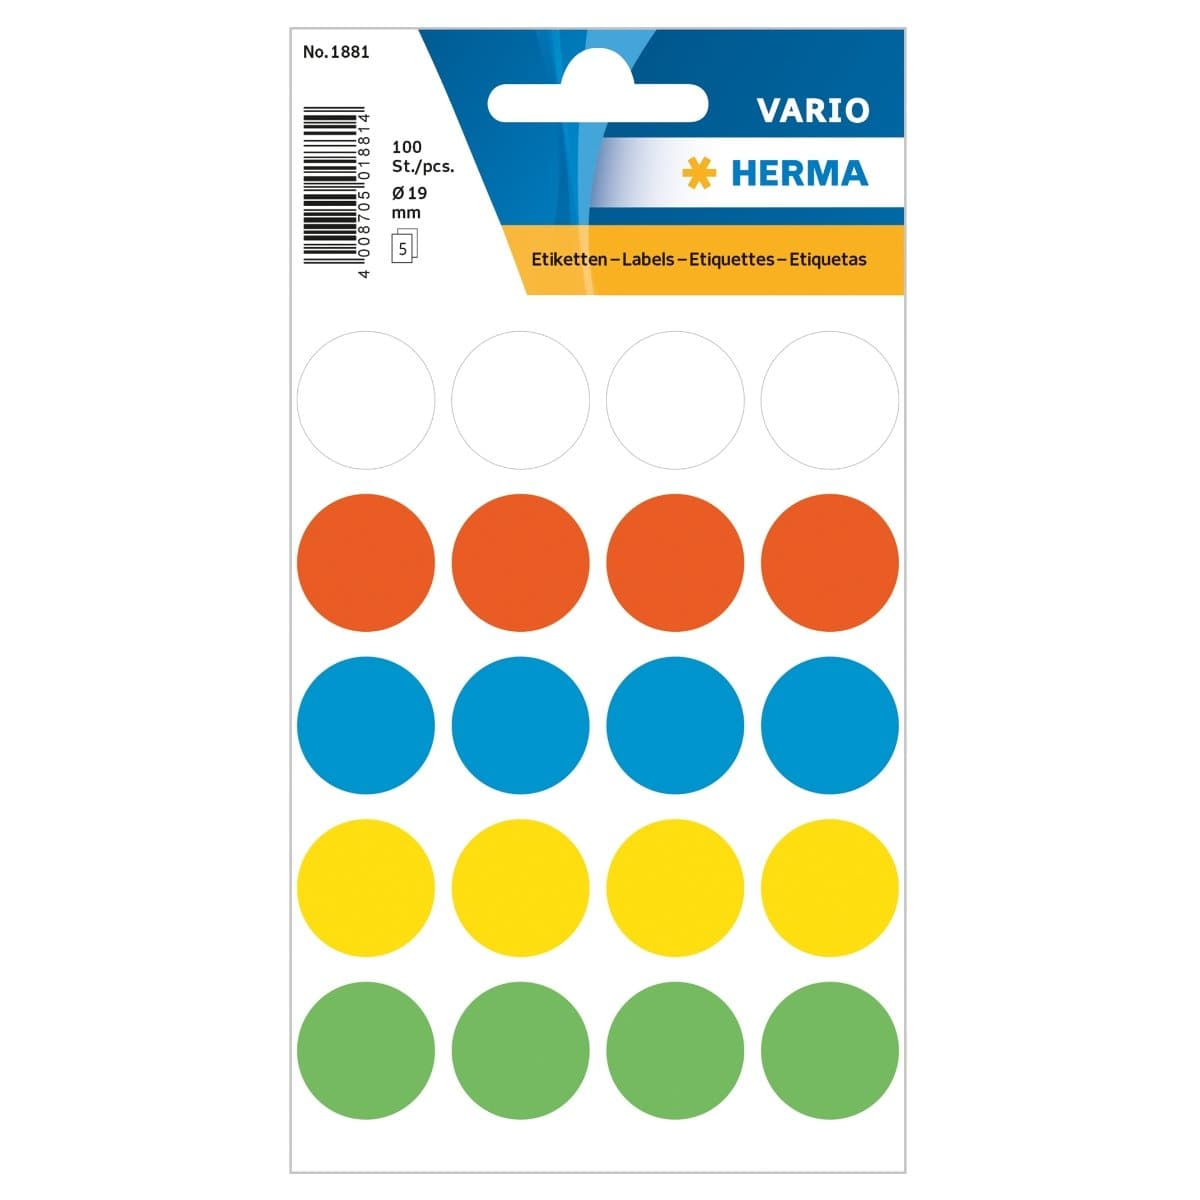 Herma Vario Sticker Color Dots, 19 mm, 100/pack, Assorted Colors